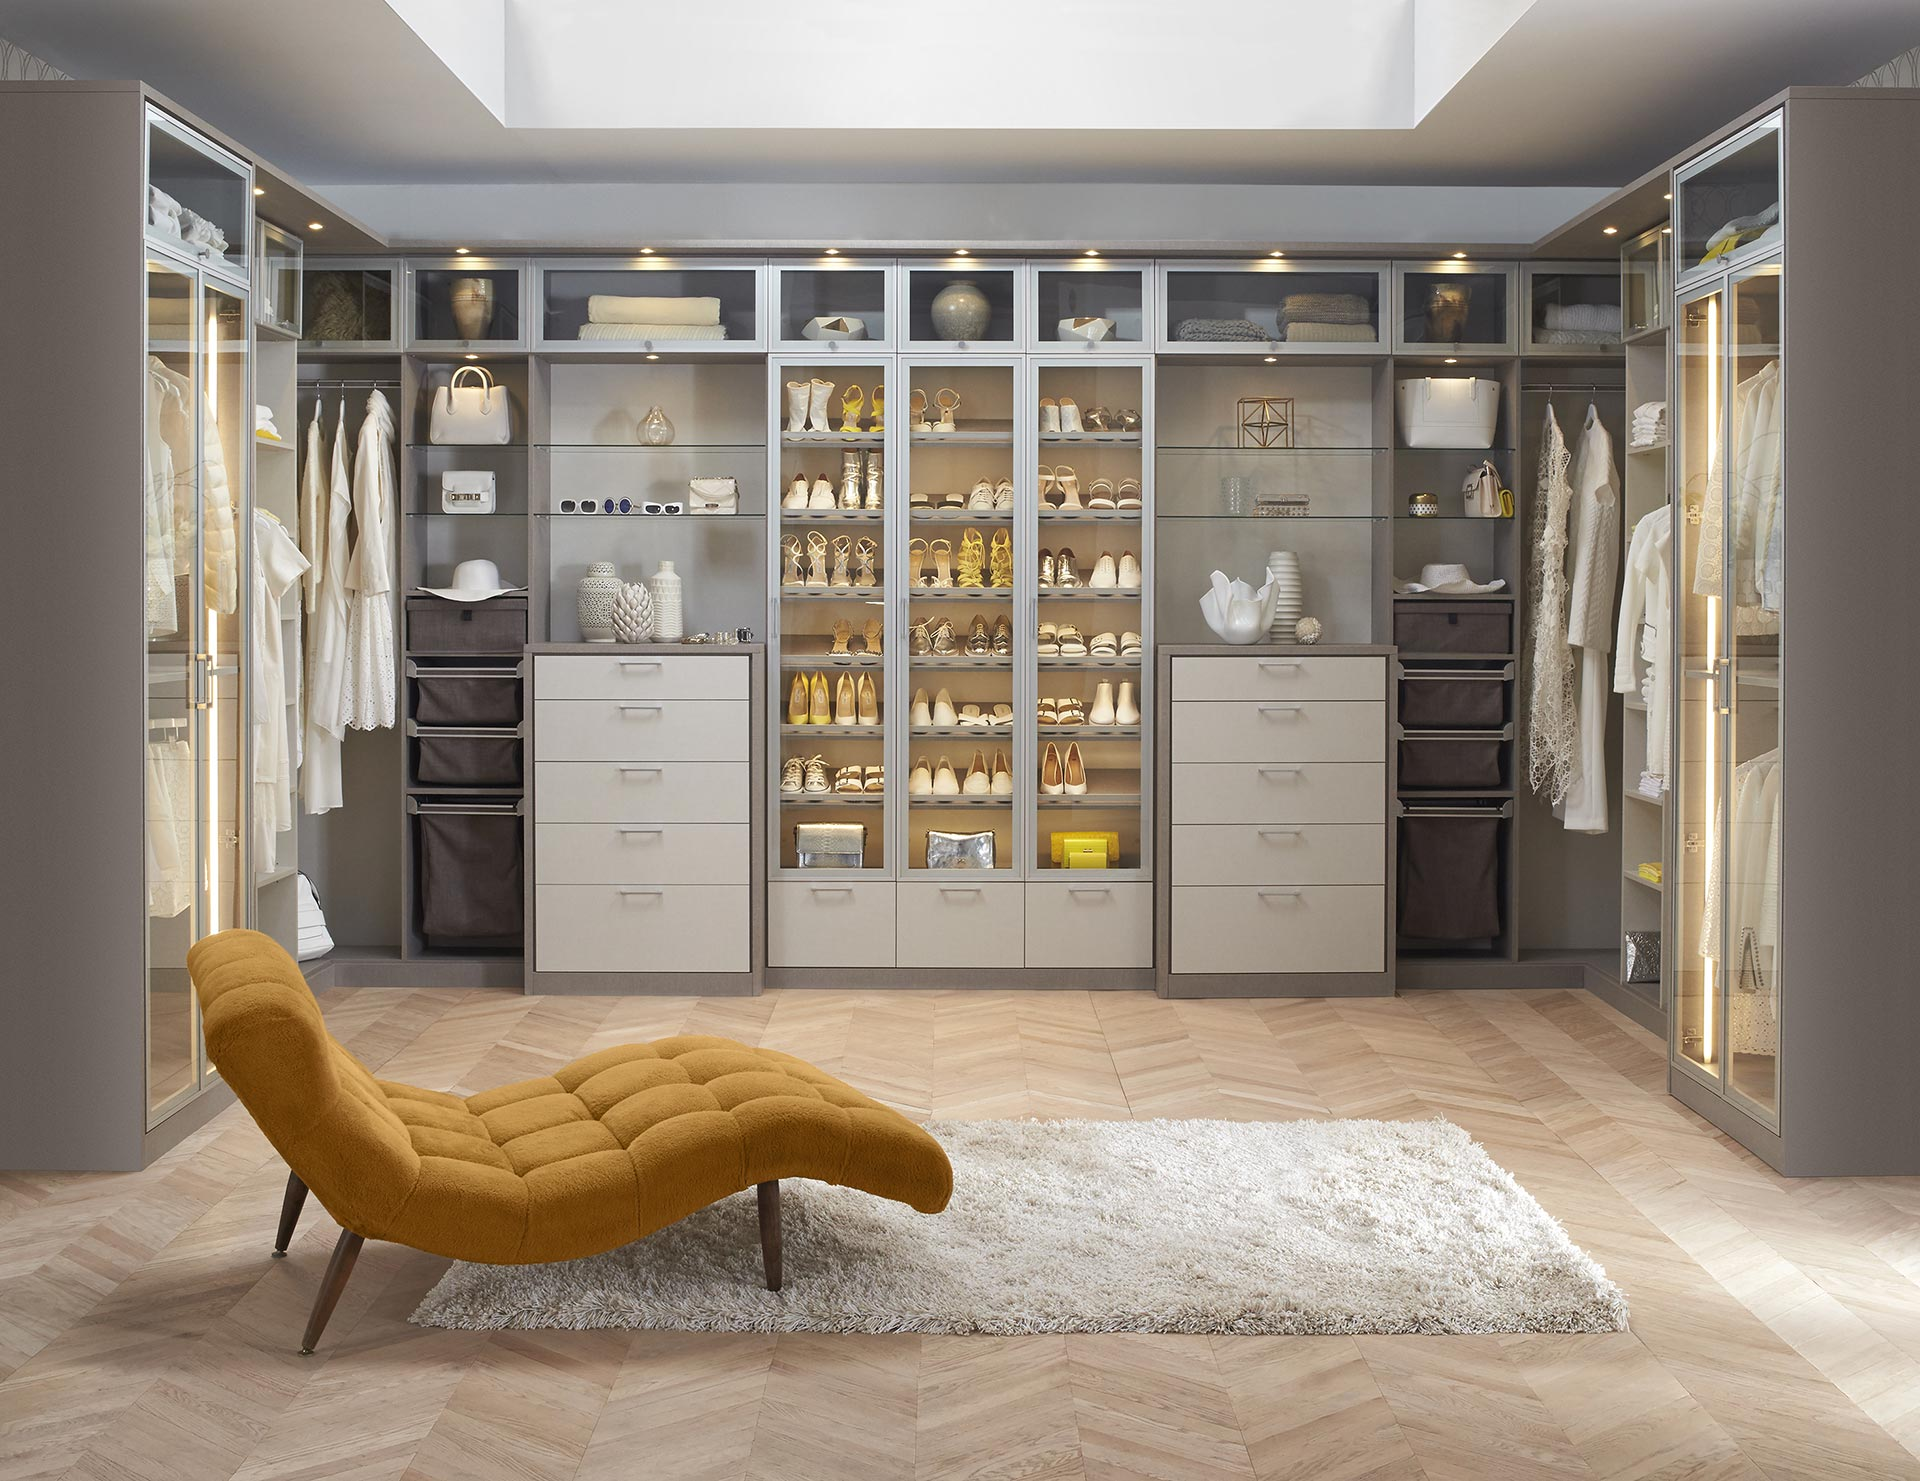 Walk in closet systems walk in closet design ideas - Walk in closet design ideas plans ...